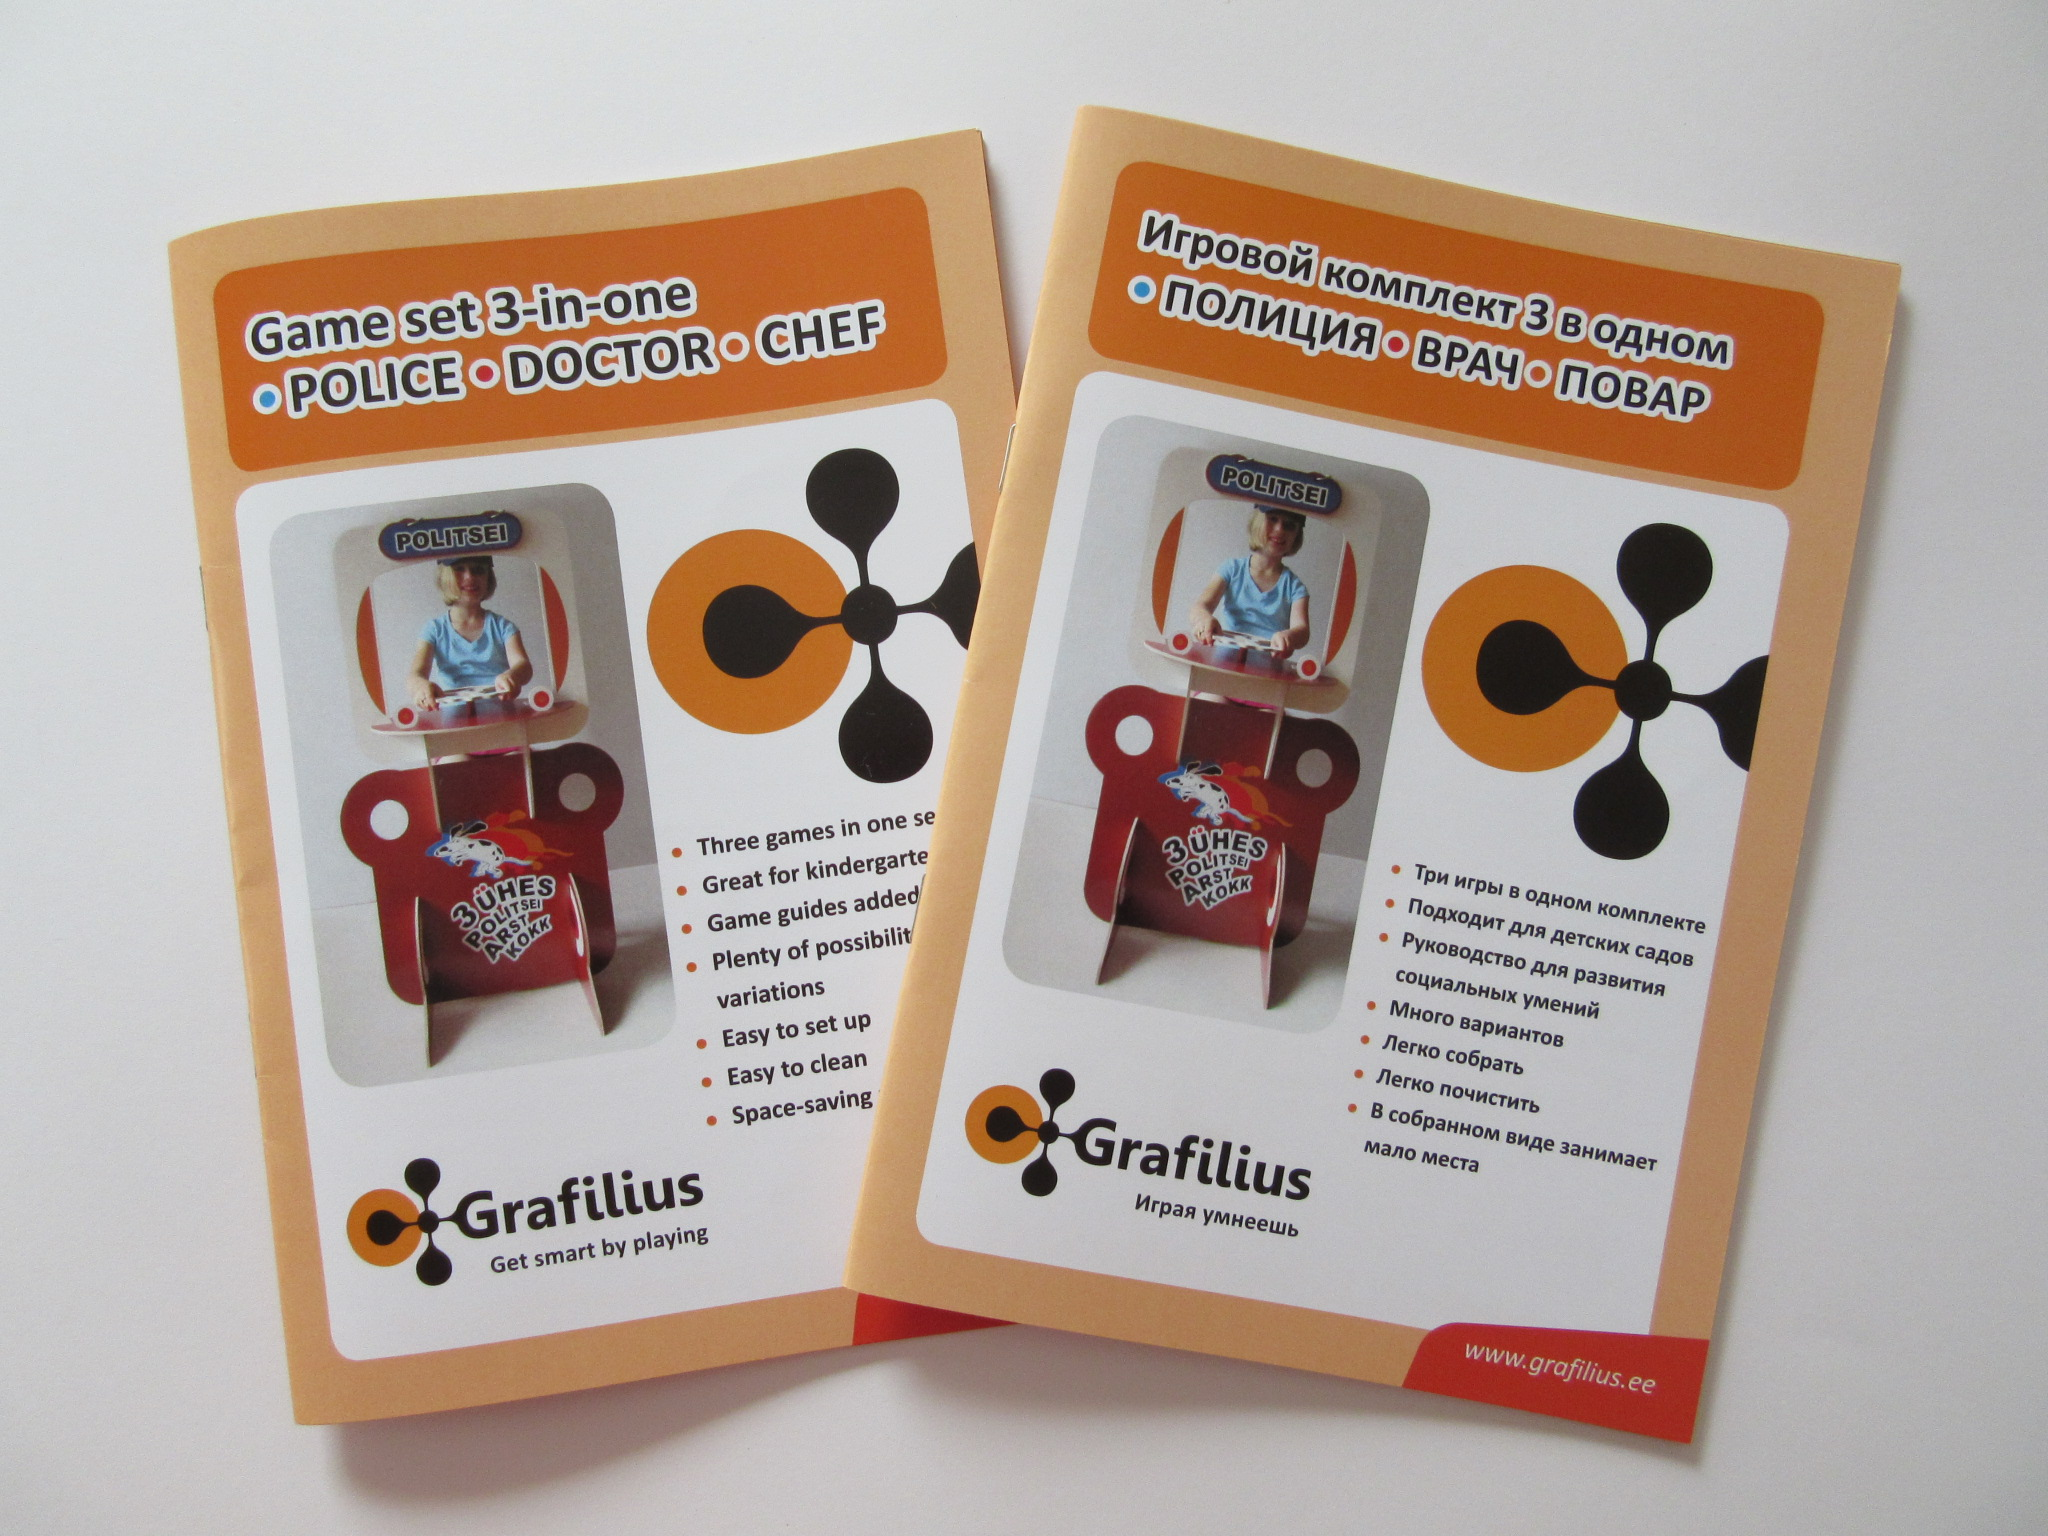 Guide of Grafilius Playset 3-in-one in English and in Russian